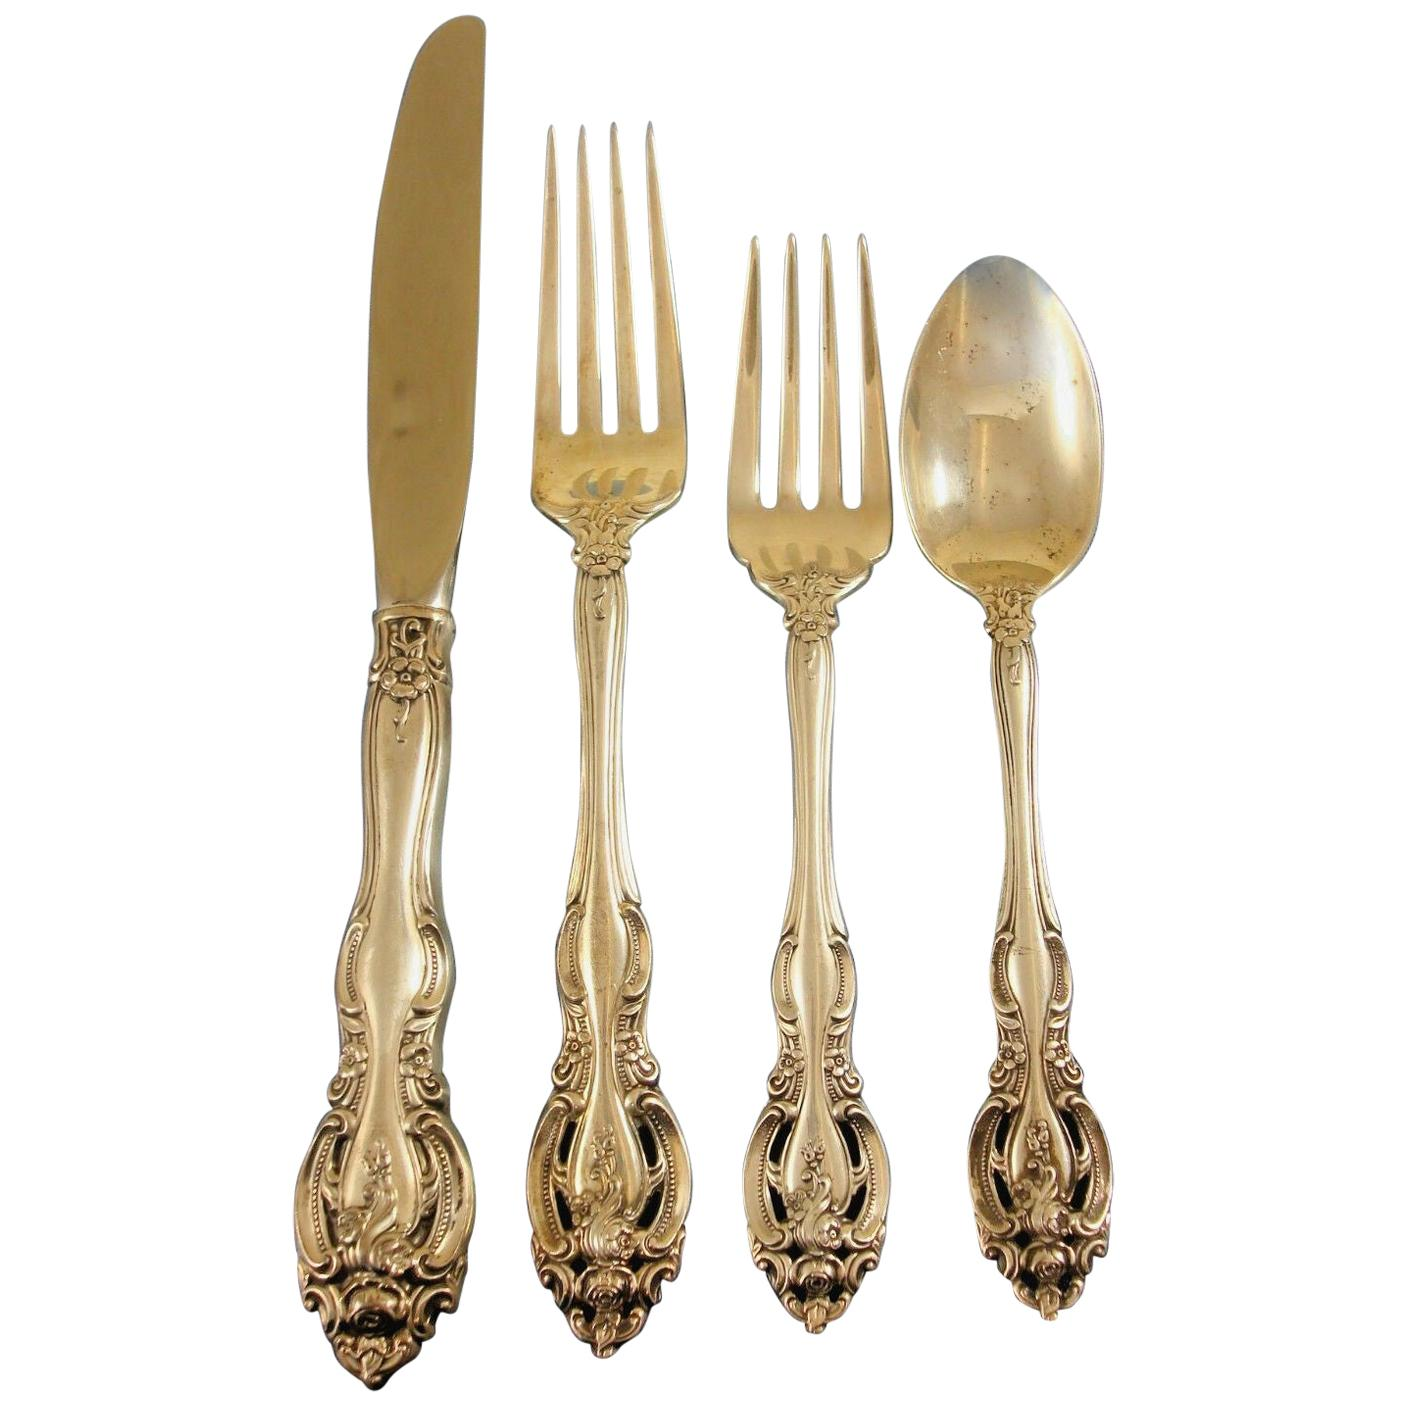 La Scala by Gorham Sterling Silver Flatware Service for 8 Set 32 Pieces